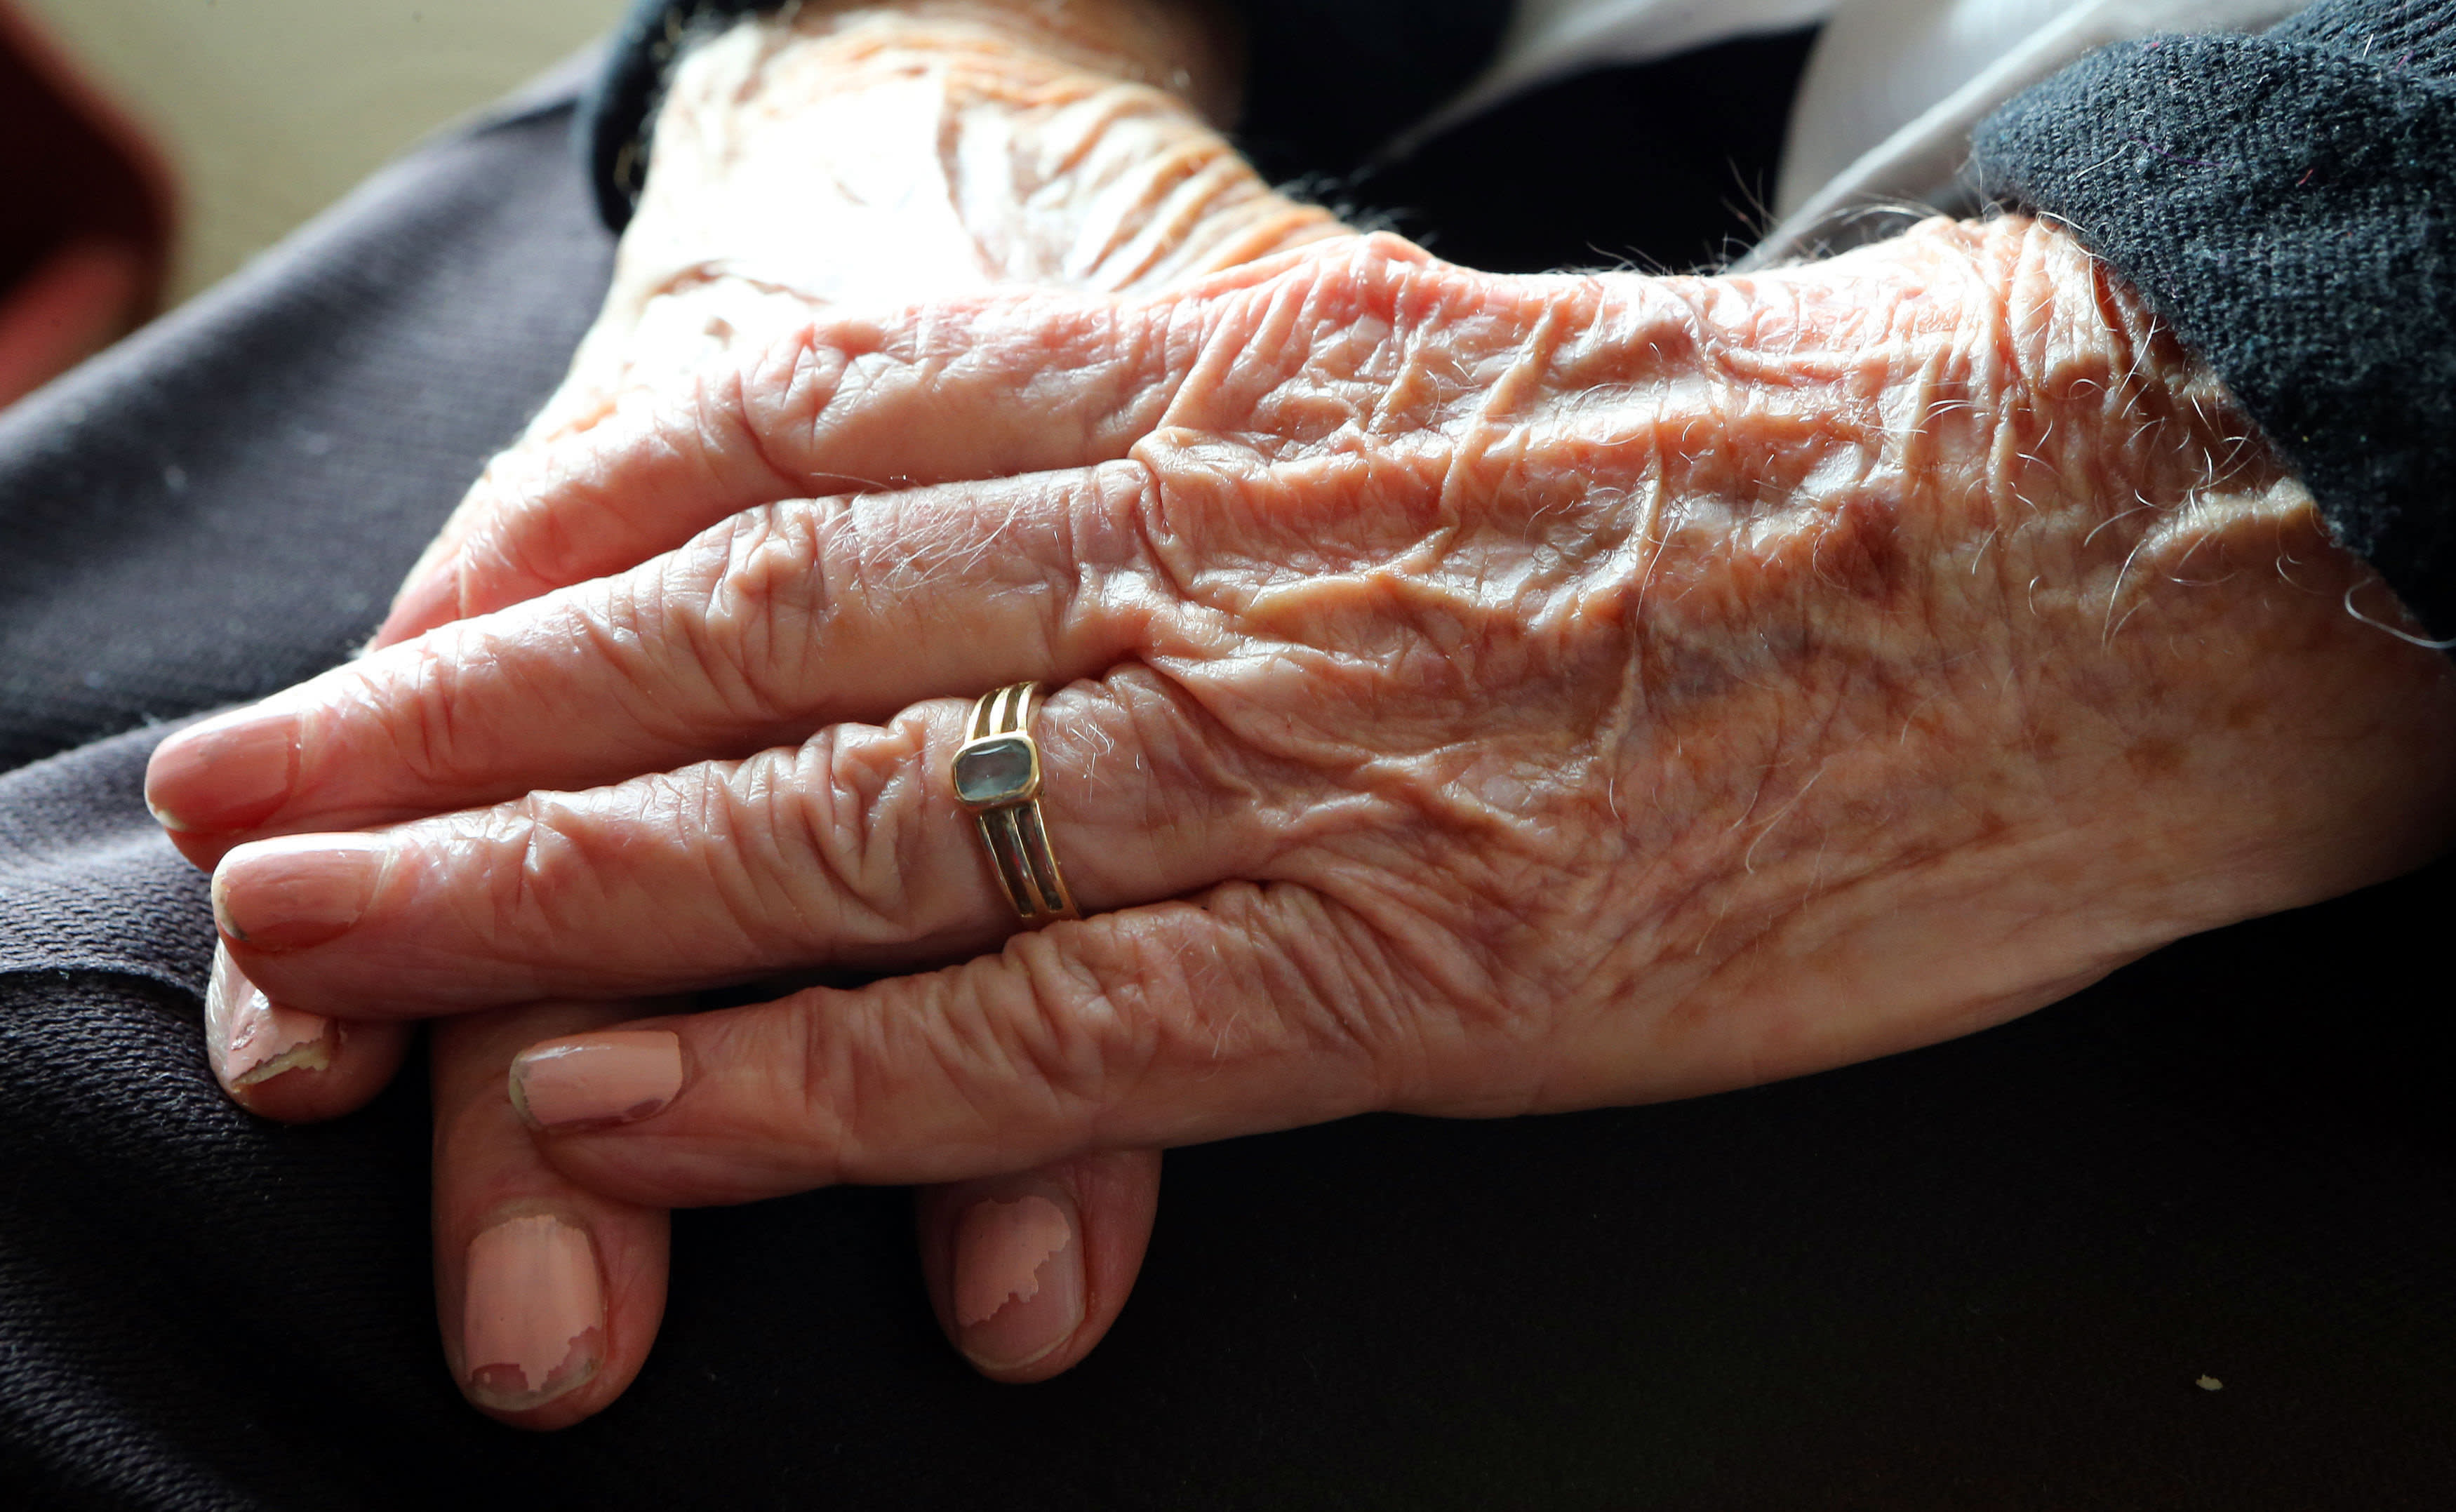 Two thirds get 'bad' annuity deal